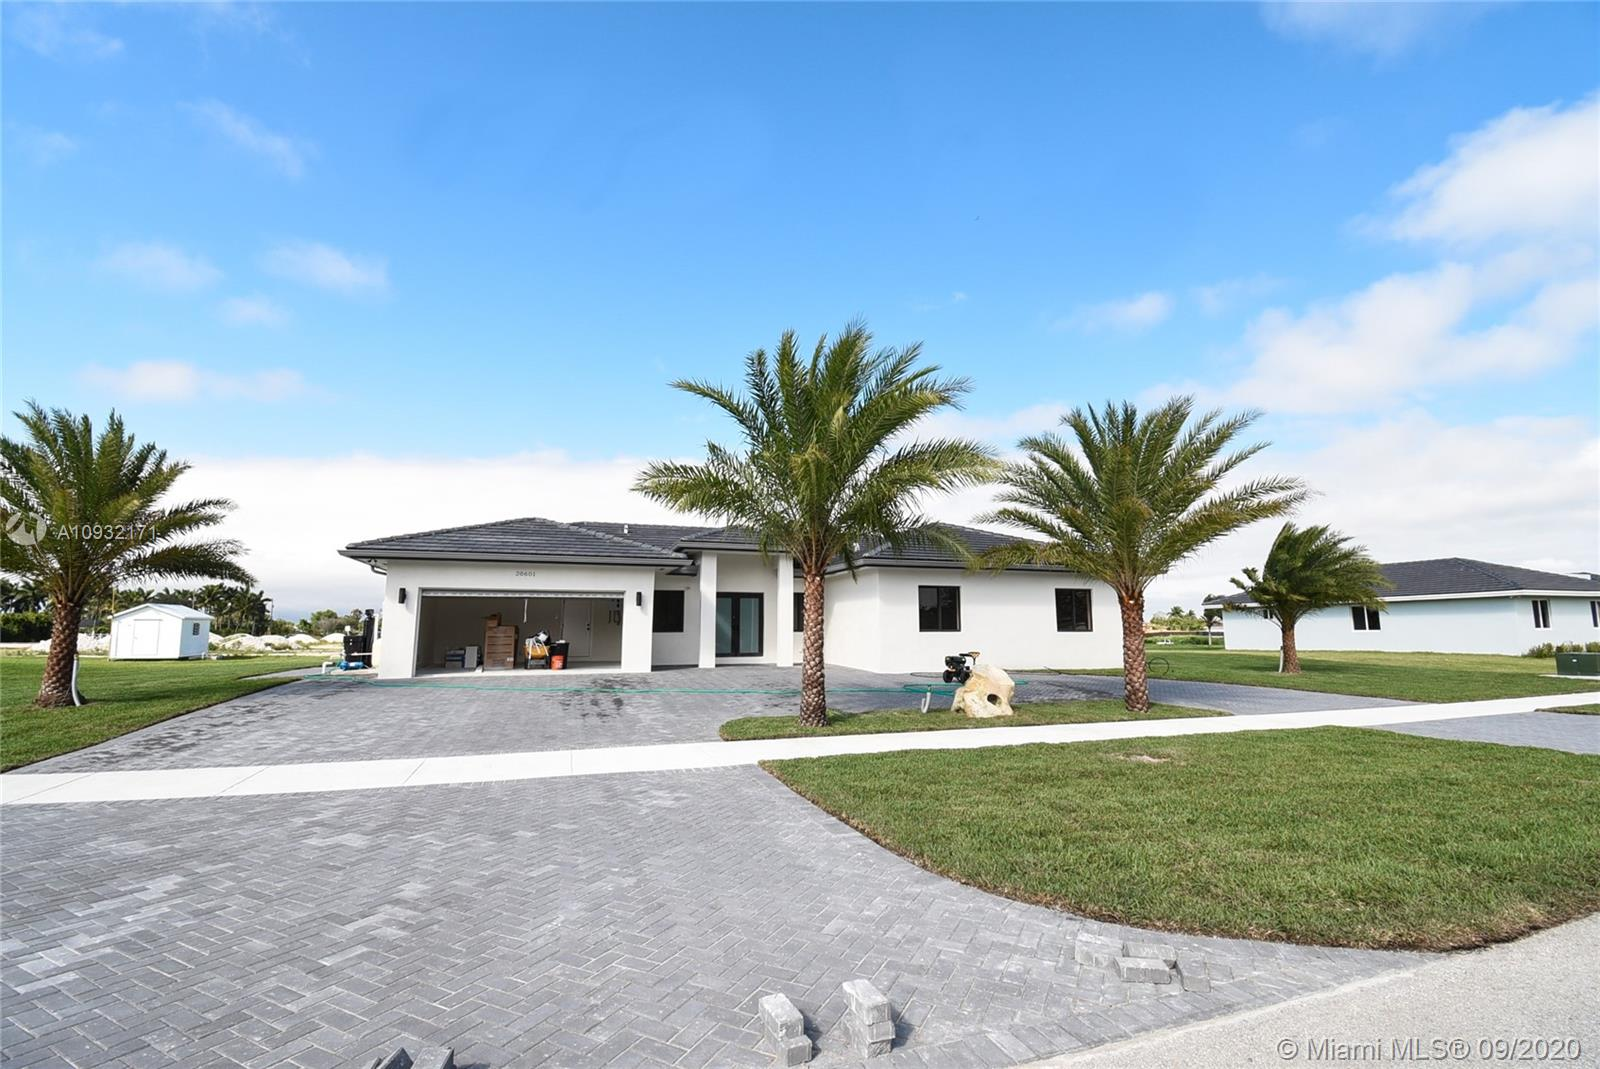 20650 SW 319th St, Miami, Florida 33030, 5 Bedrooms Bedrooms, ,3 BathroomsBathrooms,Residential,For Sale,20650 SW 319th St,A10932171